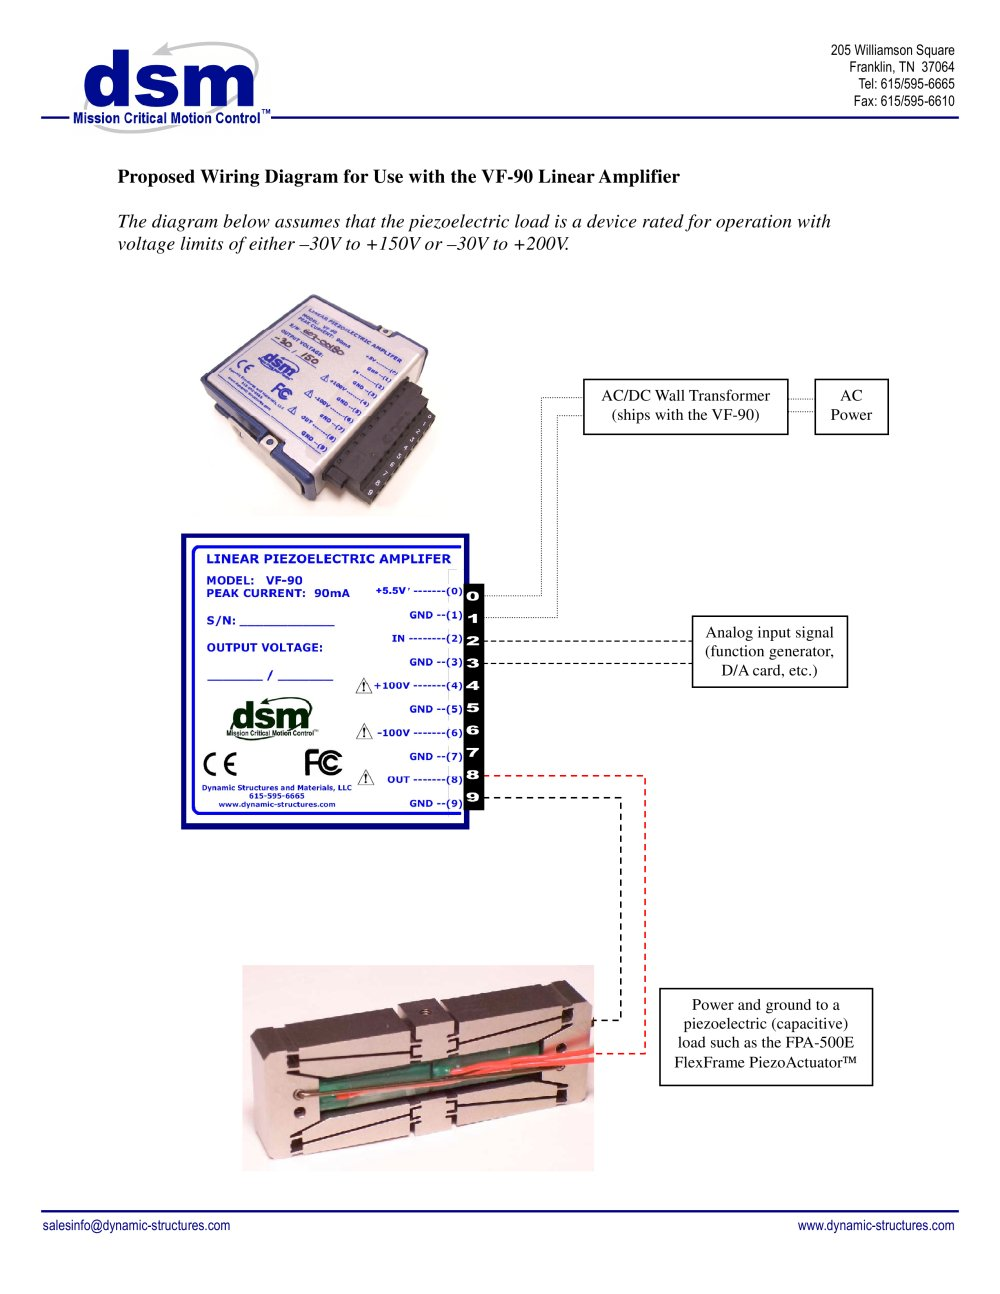 hight resolution of wiring diagram for use with the vf 90 piezo amplifier 1 1 pages